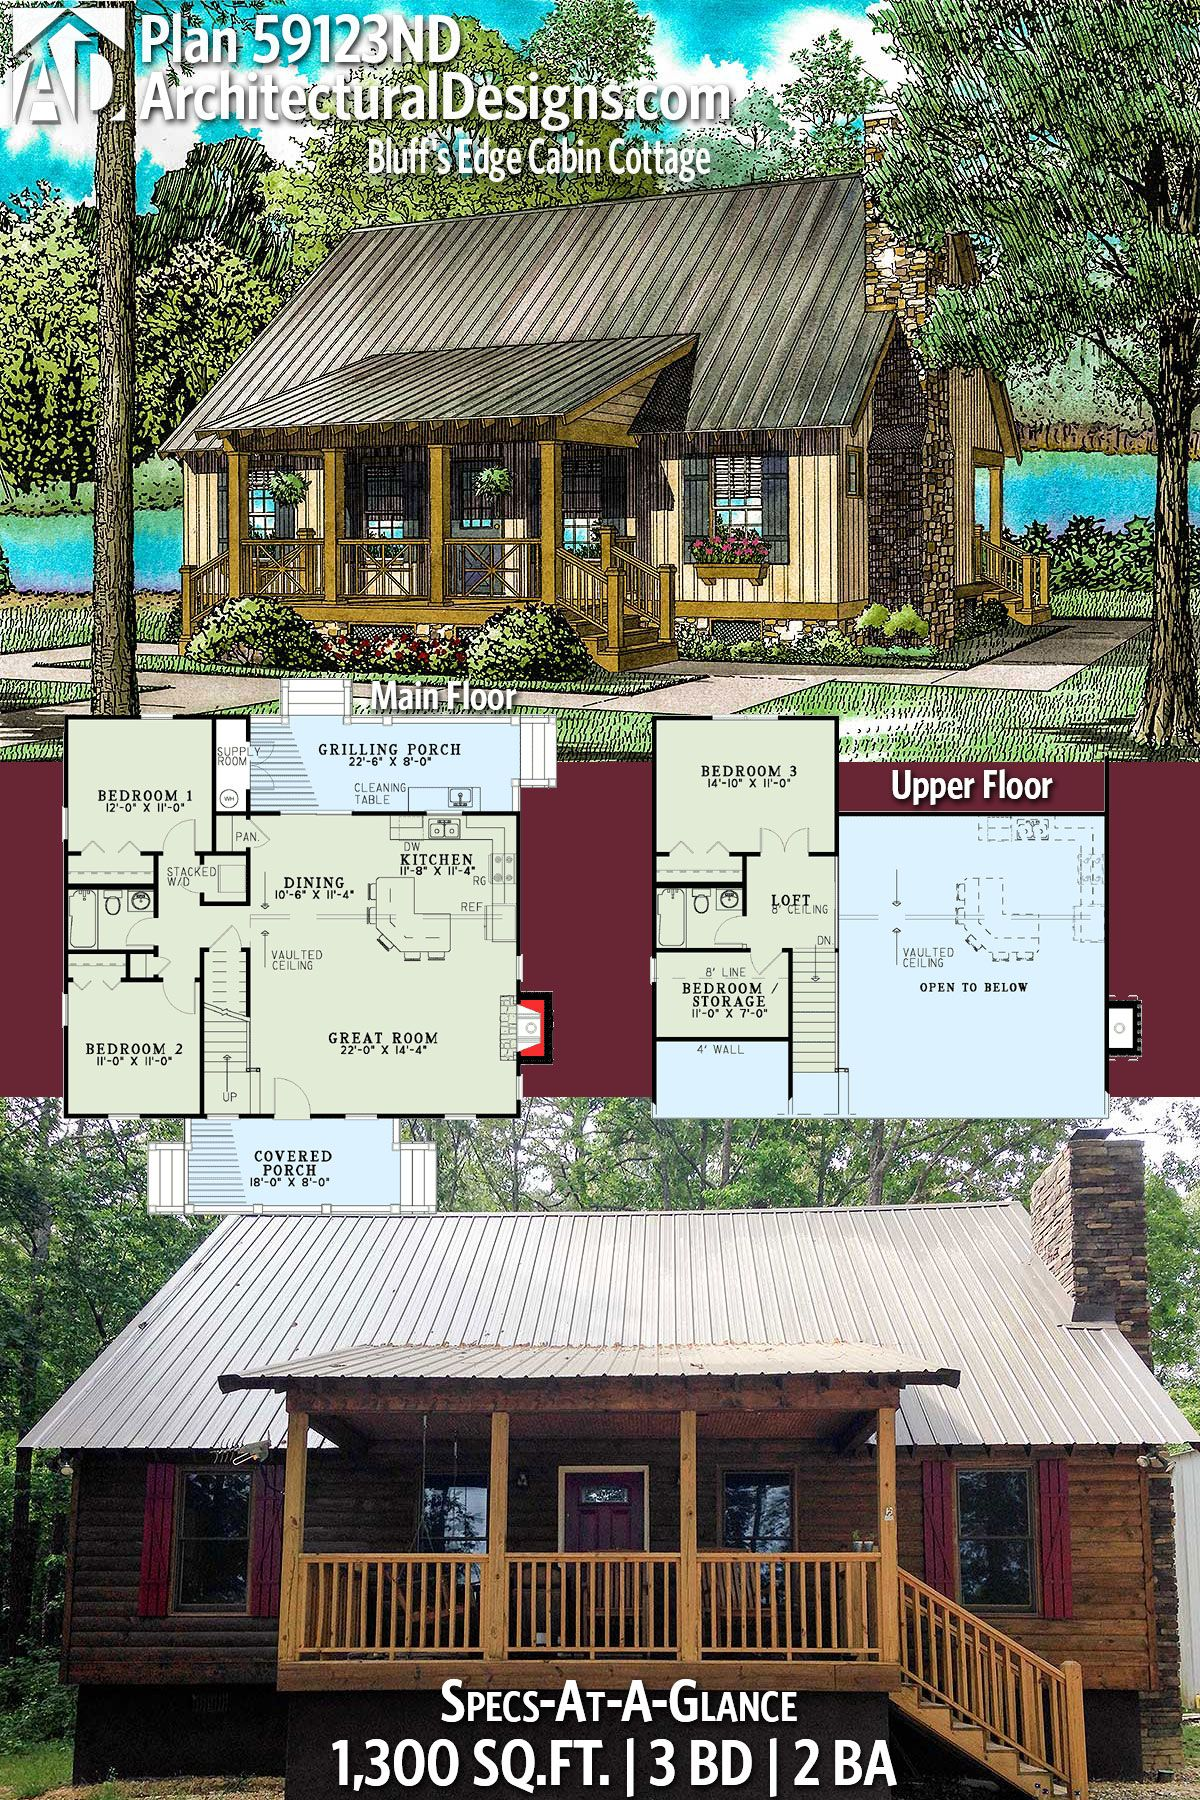 389 Best Cabin images in 2020 | House plans, Small house plans, Cottage plan